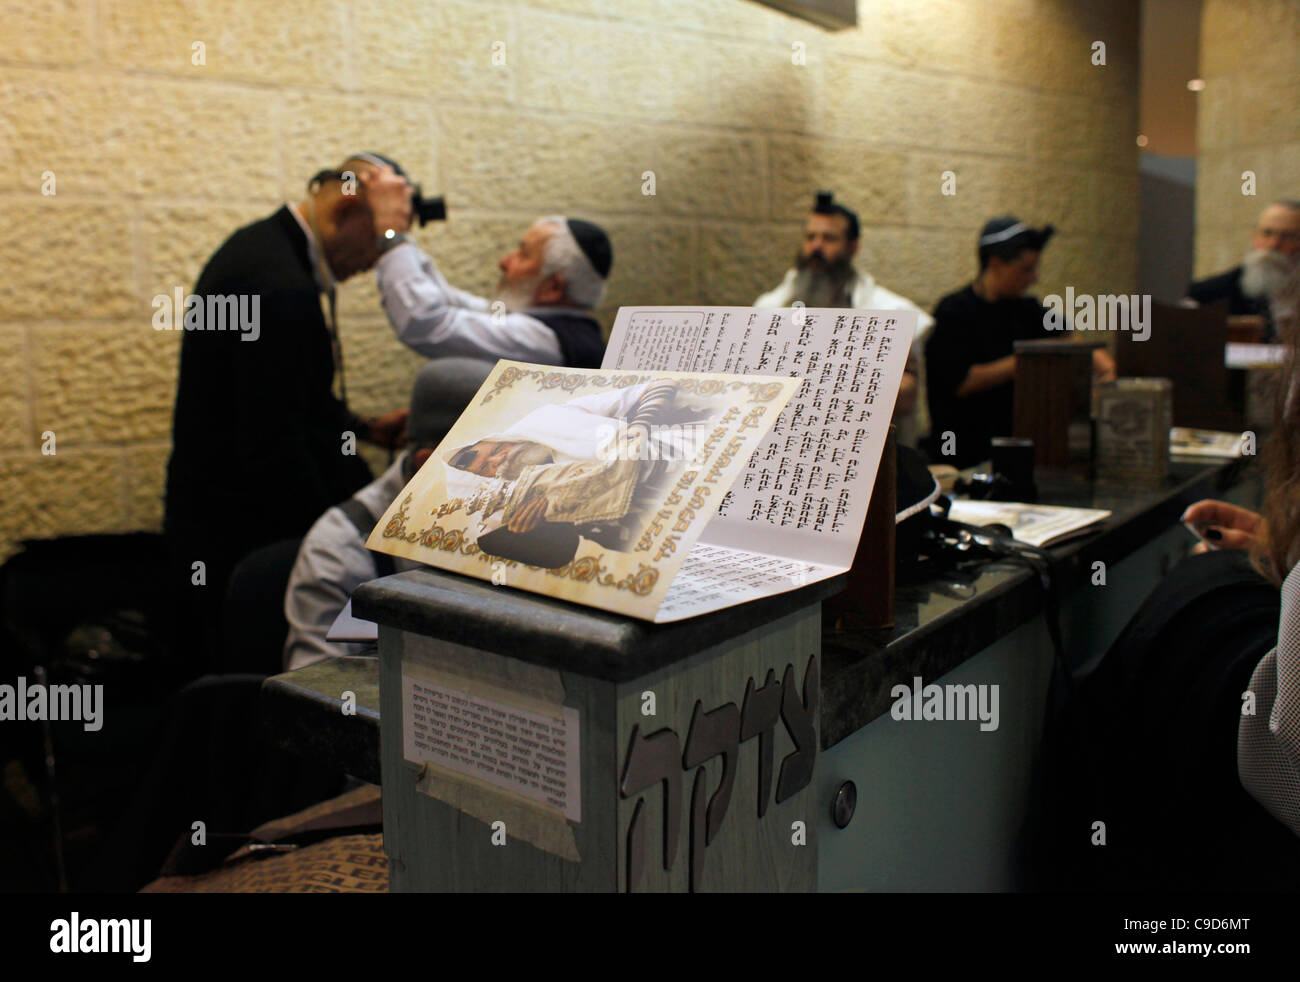 Religious Jews from Habad Lubavitch movement encouraging Jewish passengers to pray and put on Tefillin (phylacteries) - Stock Image